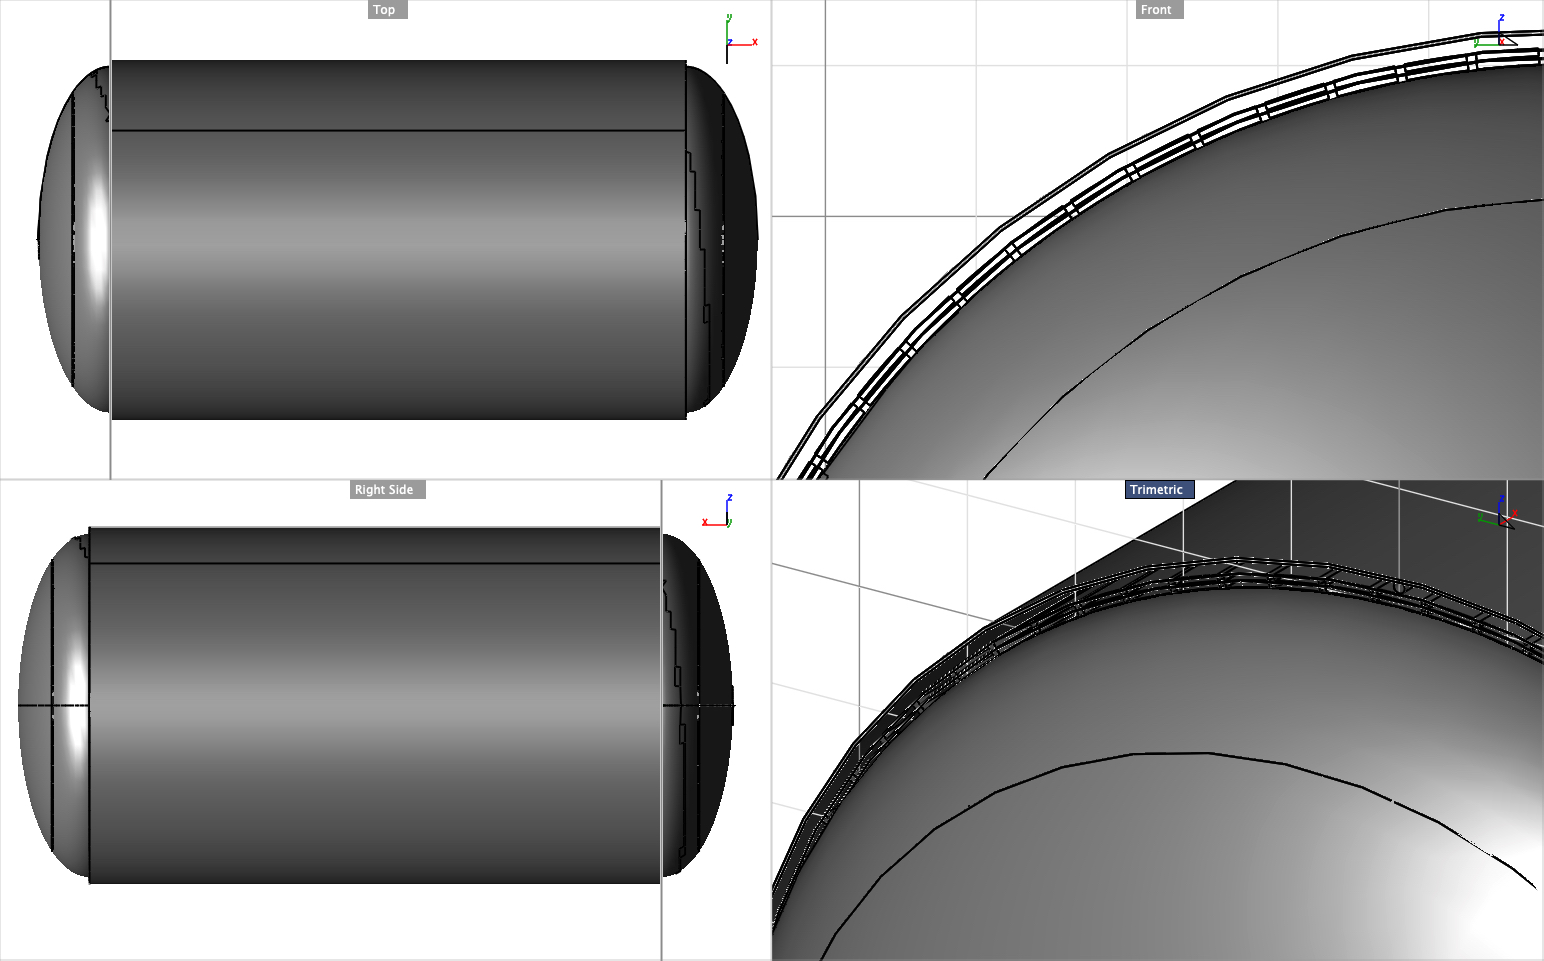 MH12500 Revised Concept-Pressure Vessels 1-5 with Voids 2 & 3 solid.jpg